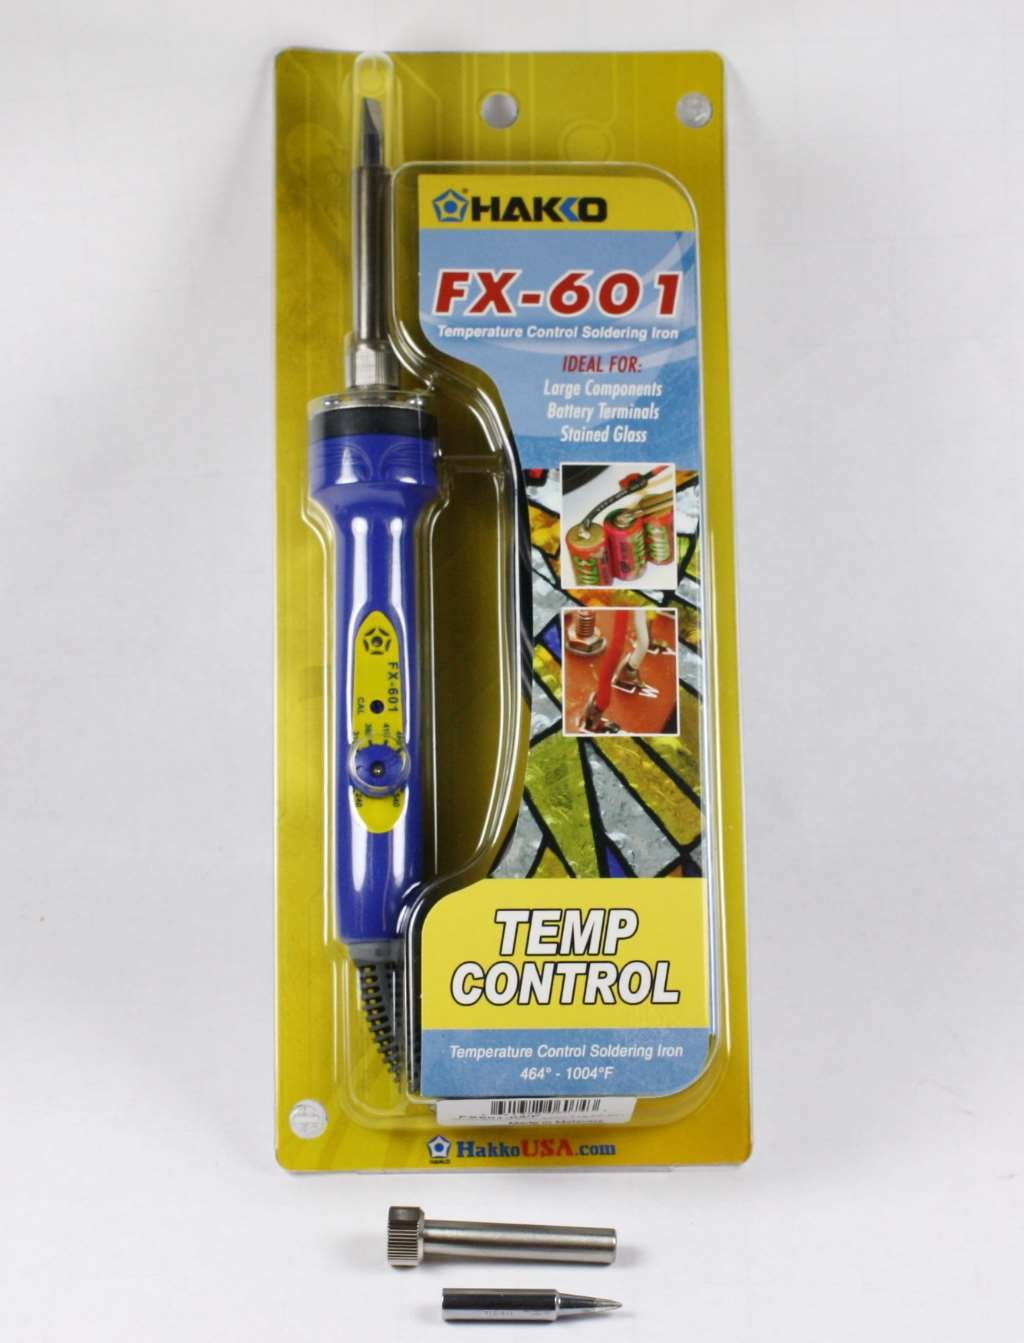 NEW HAKKO FX-601-01 Adjustable Temp-Control Soldering Iron For Stained Glass